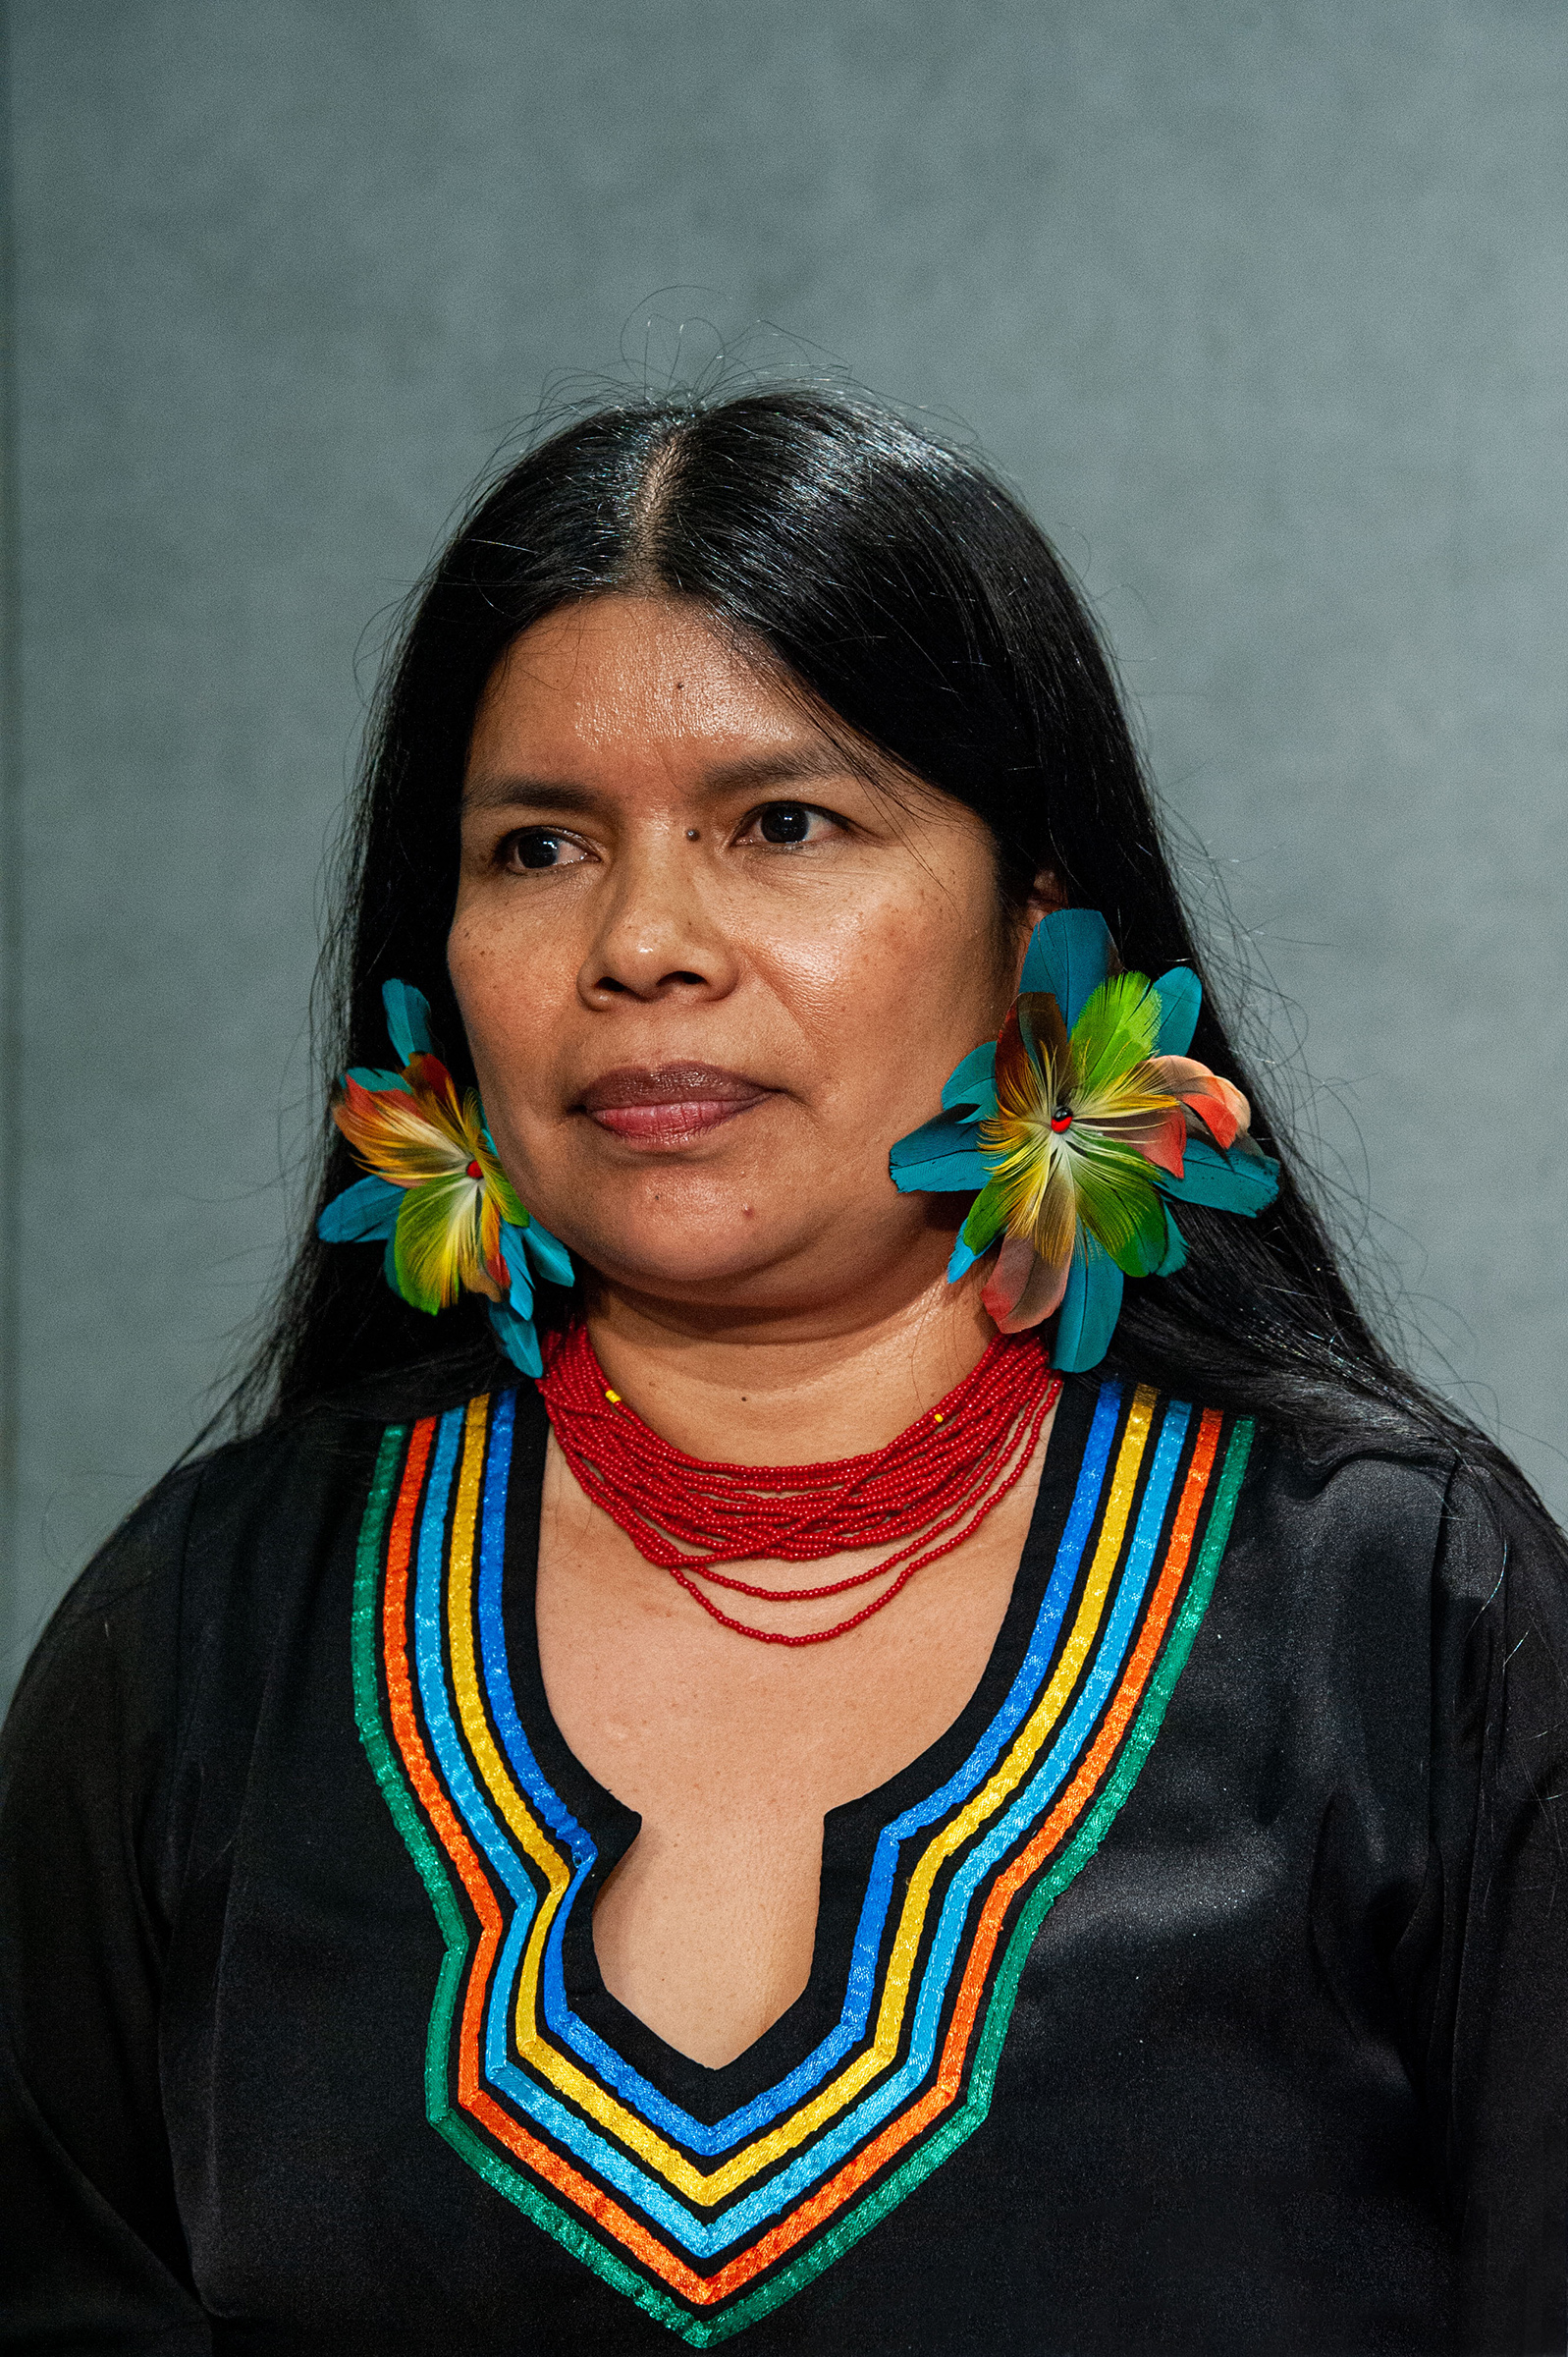 Patricia Gualinga, Indigenous Leader in the Defense of Human Rights of the Kichwa Communities of Sarayaku (Ecuador) speaks at the Press Office of the Holy See in the Vatican on Oct 17, 2019.